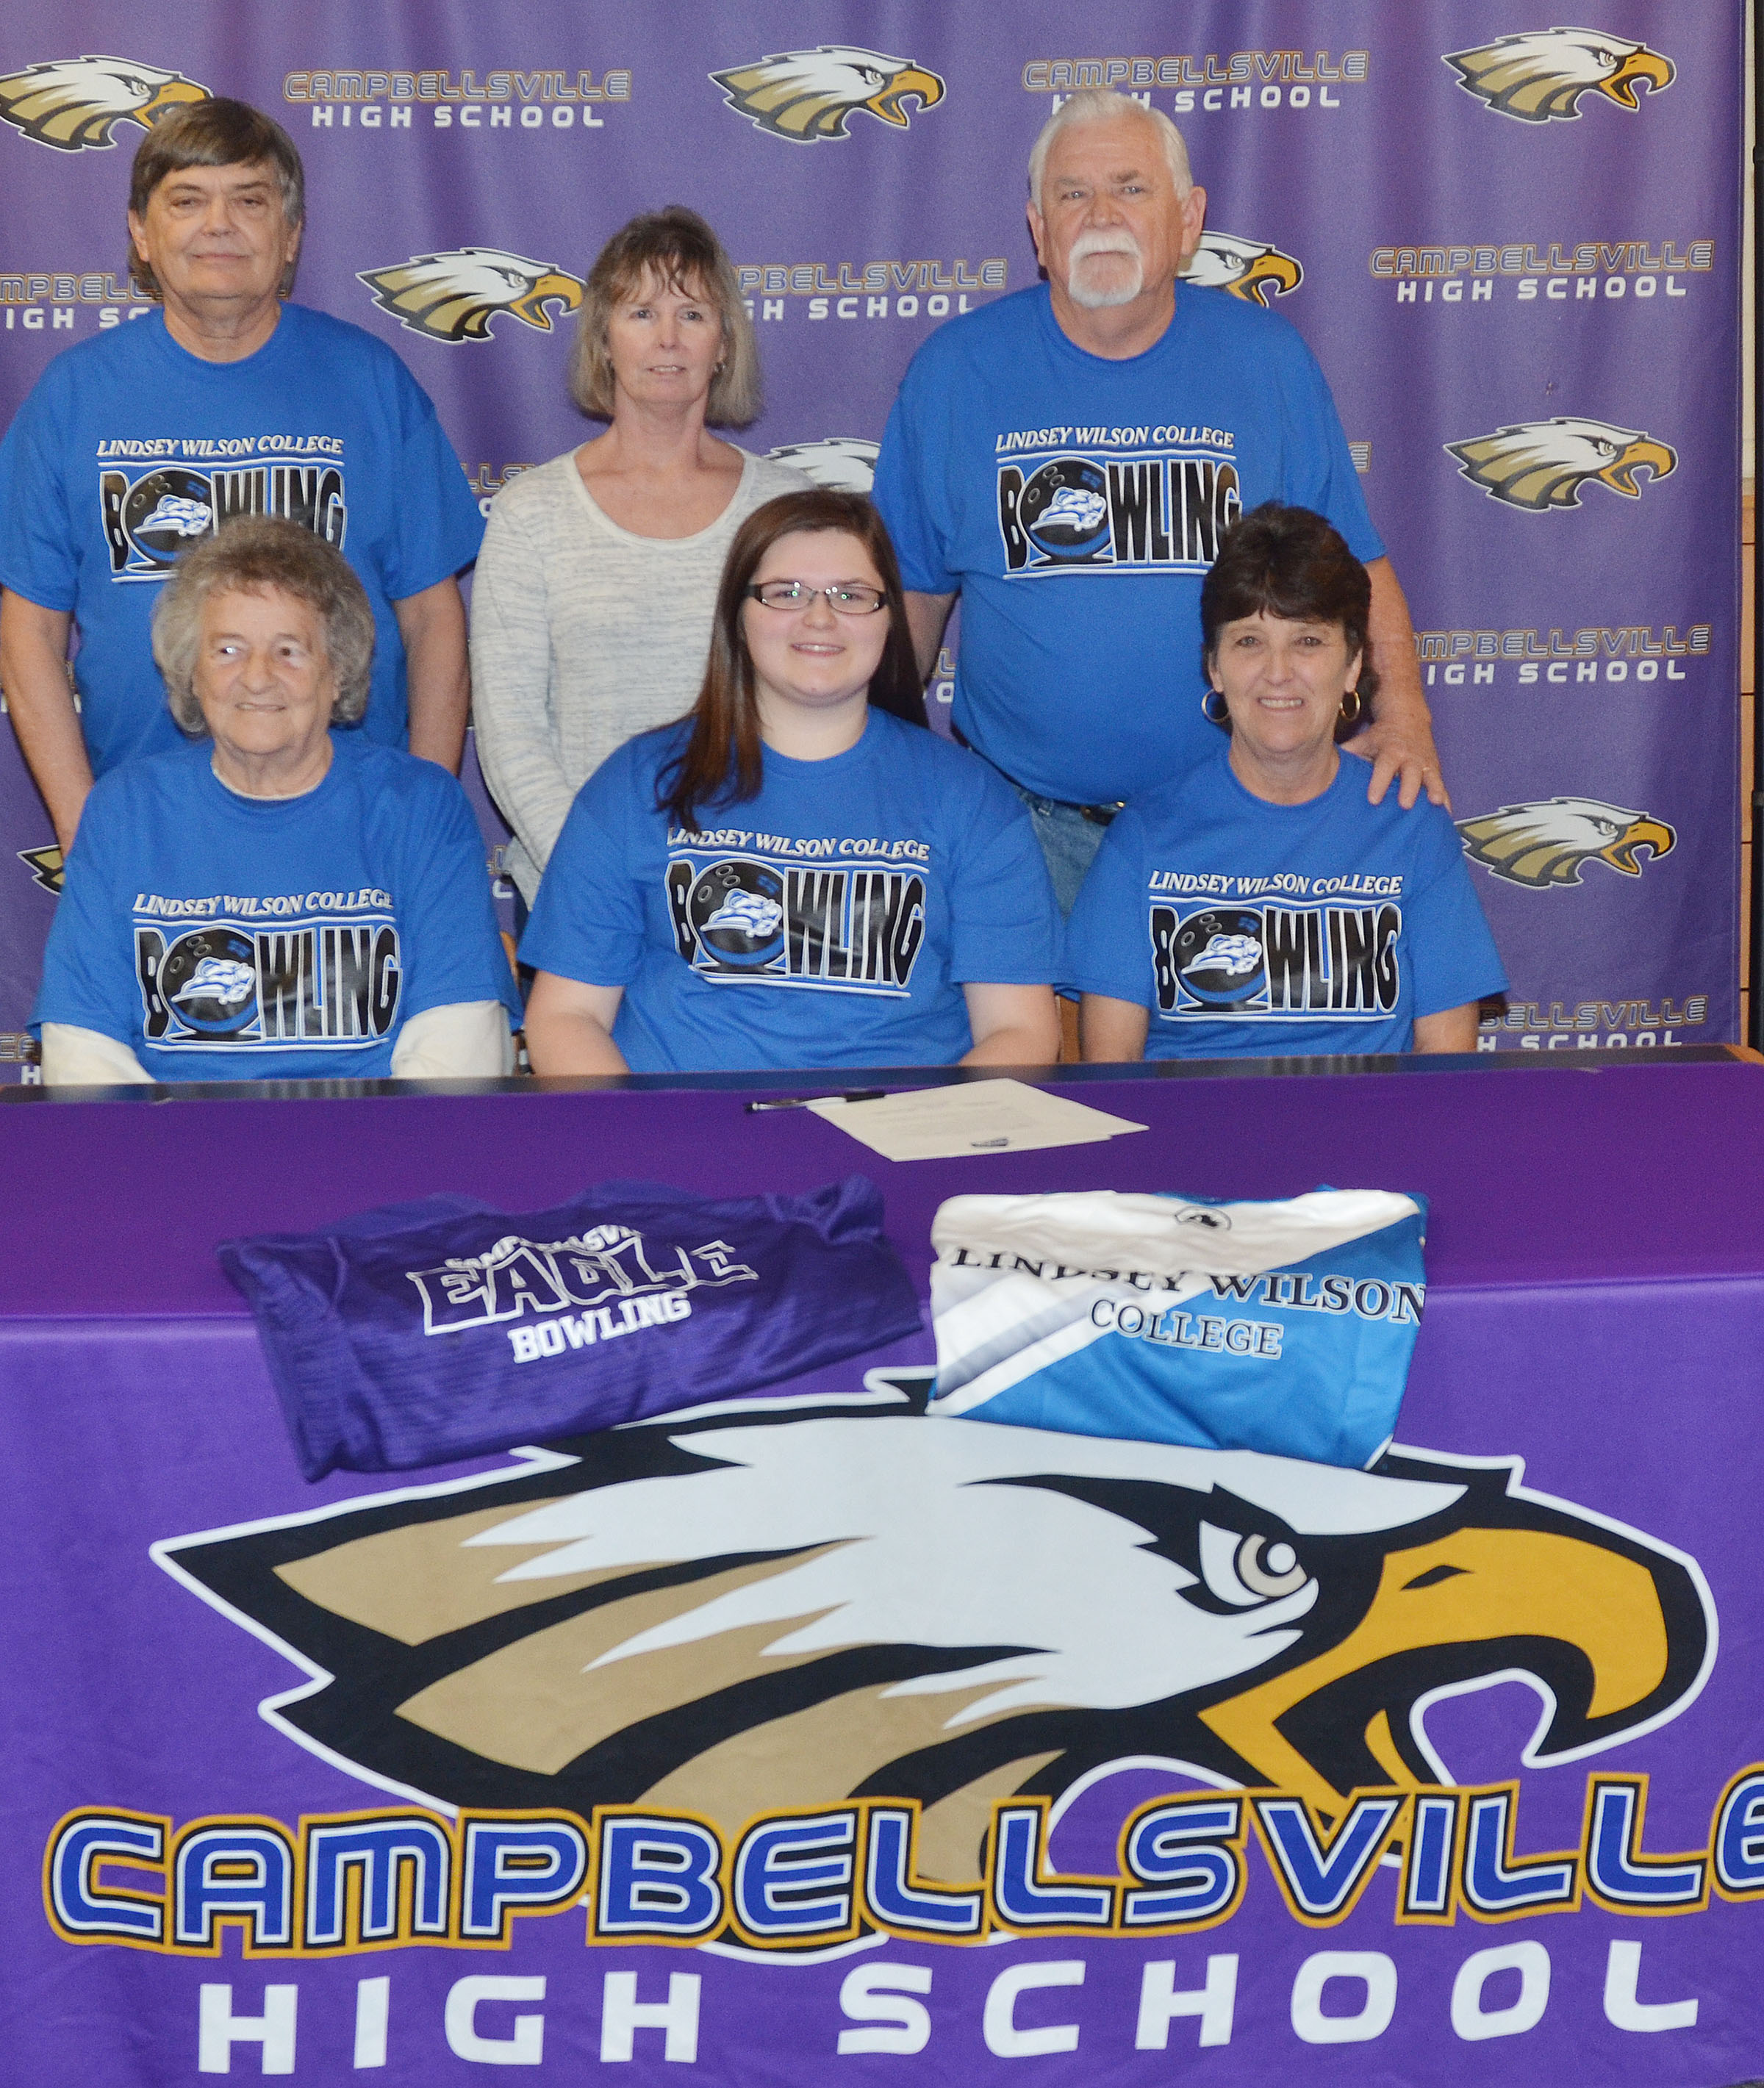 Campbellsville High School senior Vera Brown will continue her academic and bowling career at Lindsey Wilson College in the fall. She officially signed her letter of intent in a special ceremony on Wednesday, Feb. 1. From left, front, are great-grandmother Juanita Skaggs, Vera and grandmother Sandy Holmes. Back, grandfather David Zirnheld, grandmother LouAnn Zirnheld and grandfather Allen Holmes.